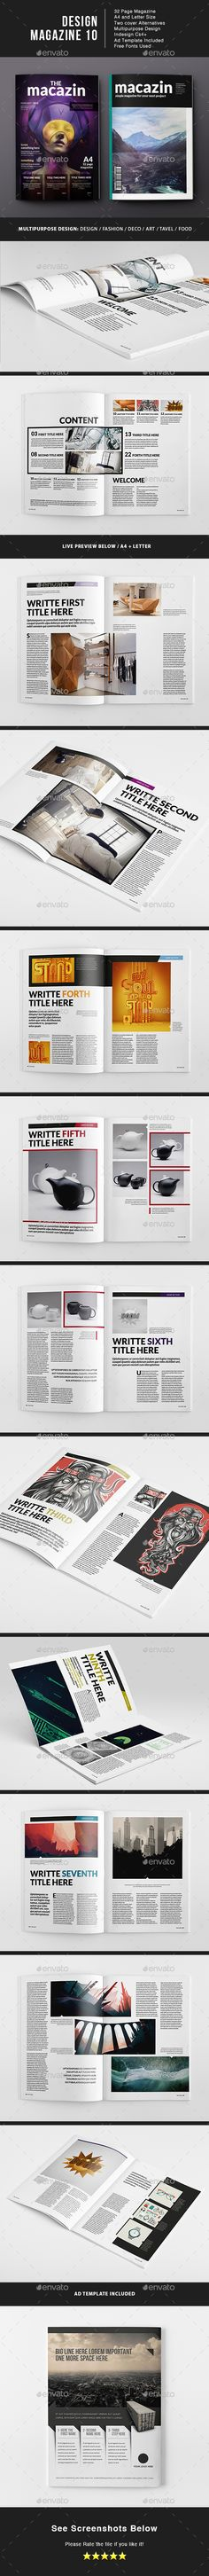 Design Magazine 32 Pages Template InDesign INDD #design Download: http://graphicriver.net/item/design-magazine-10-template/14387273?ref=ksioks